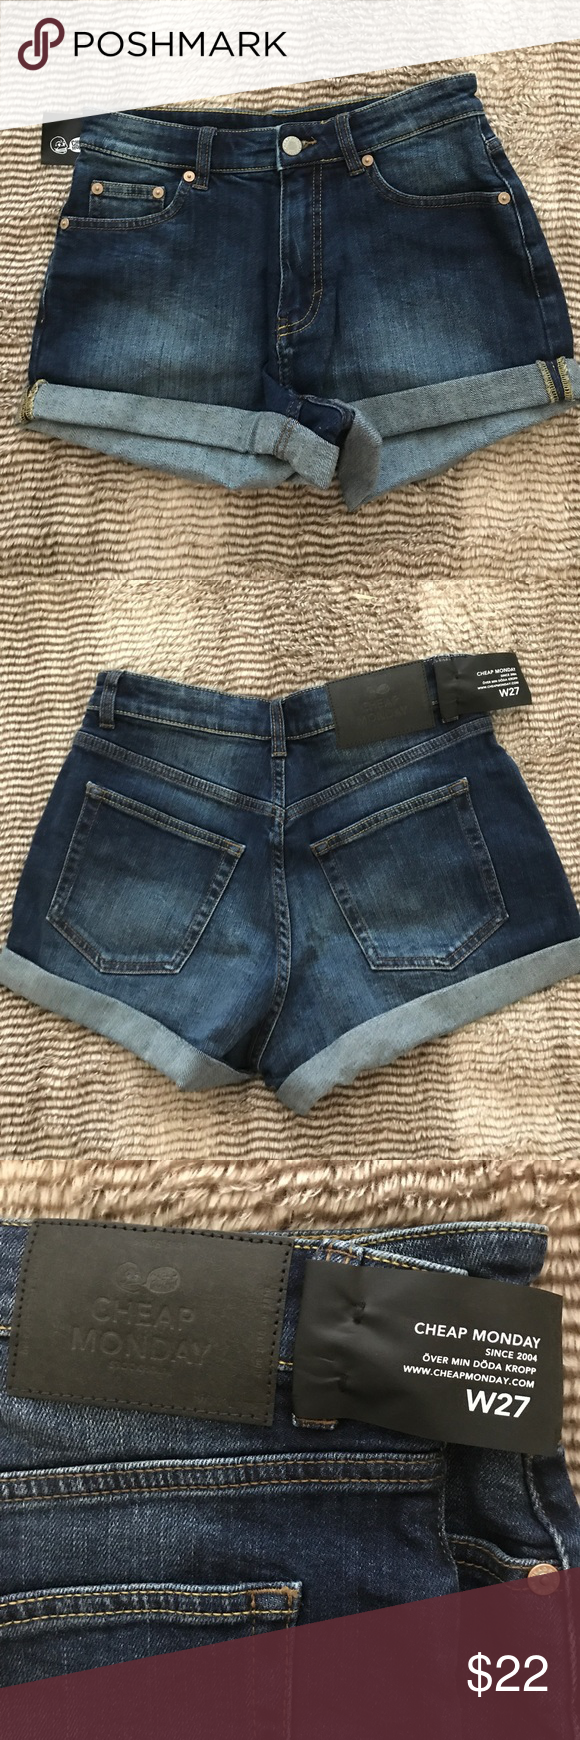 e9a6707b95 Cheap Monday jean shorts Brand new with tags, size 27 Cheap Monday Shorts  Jean Shorts